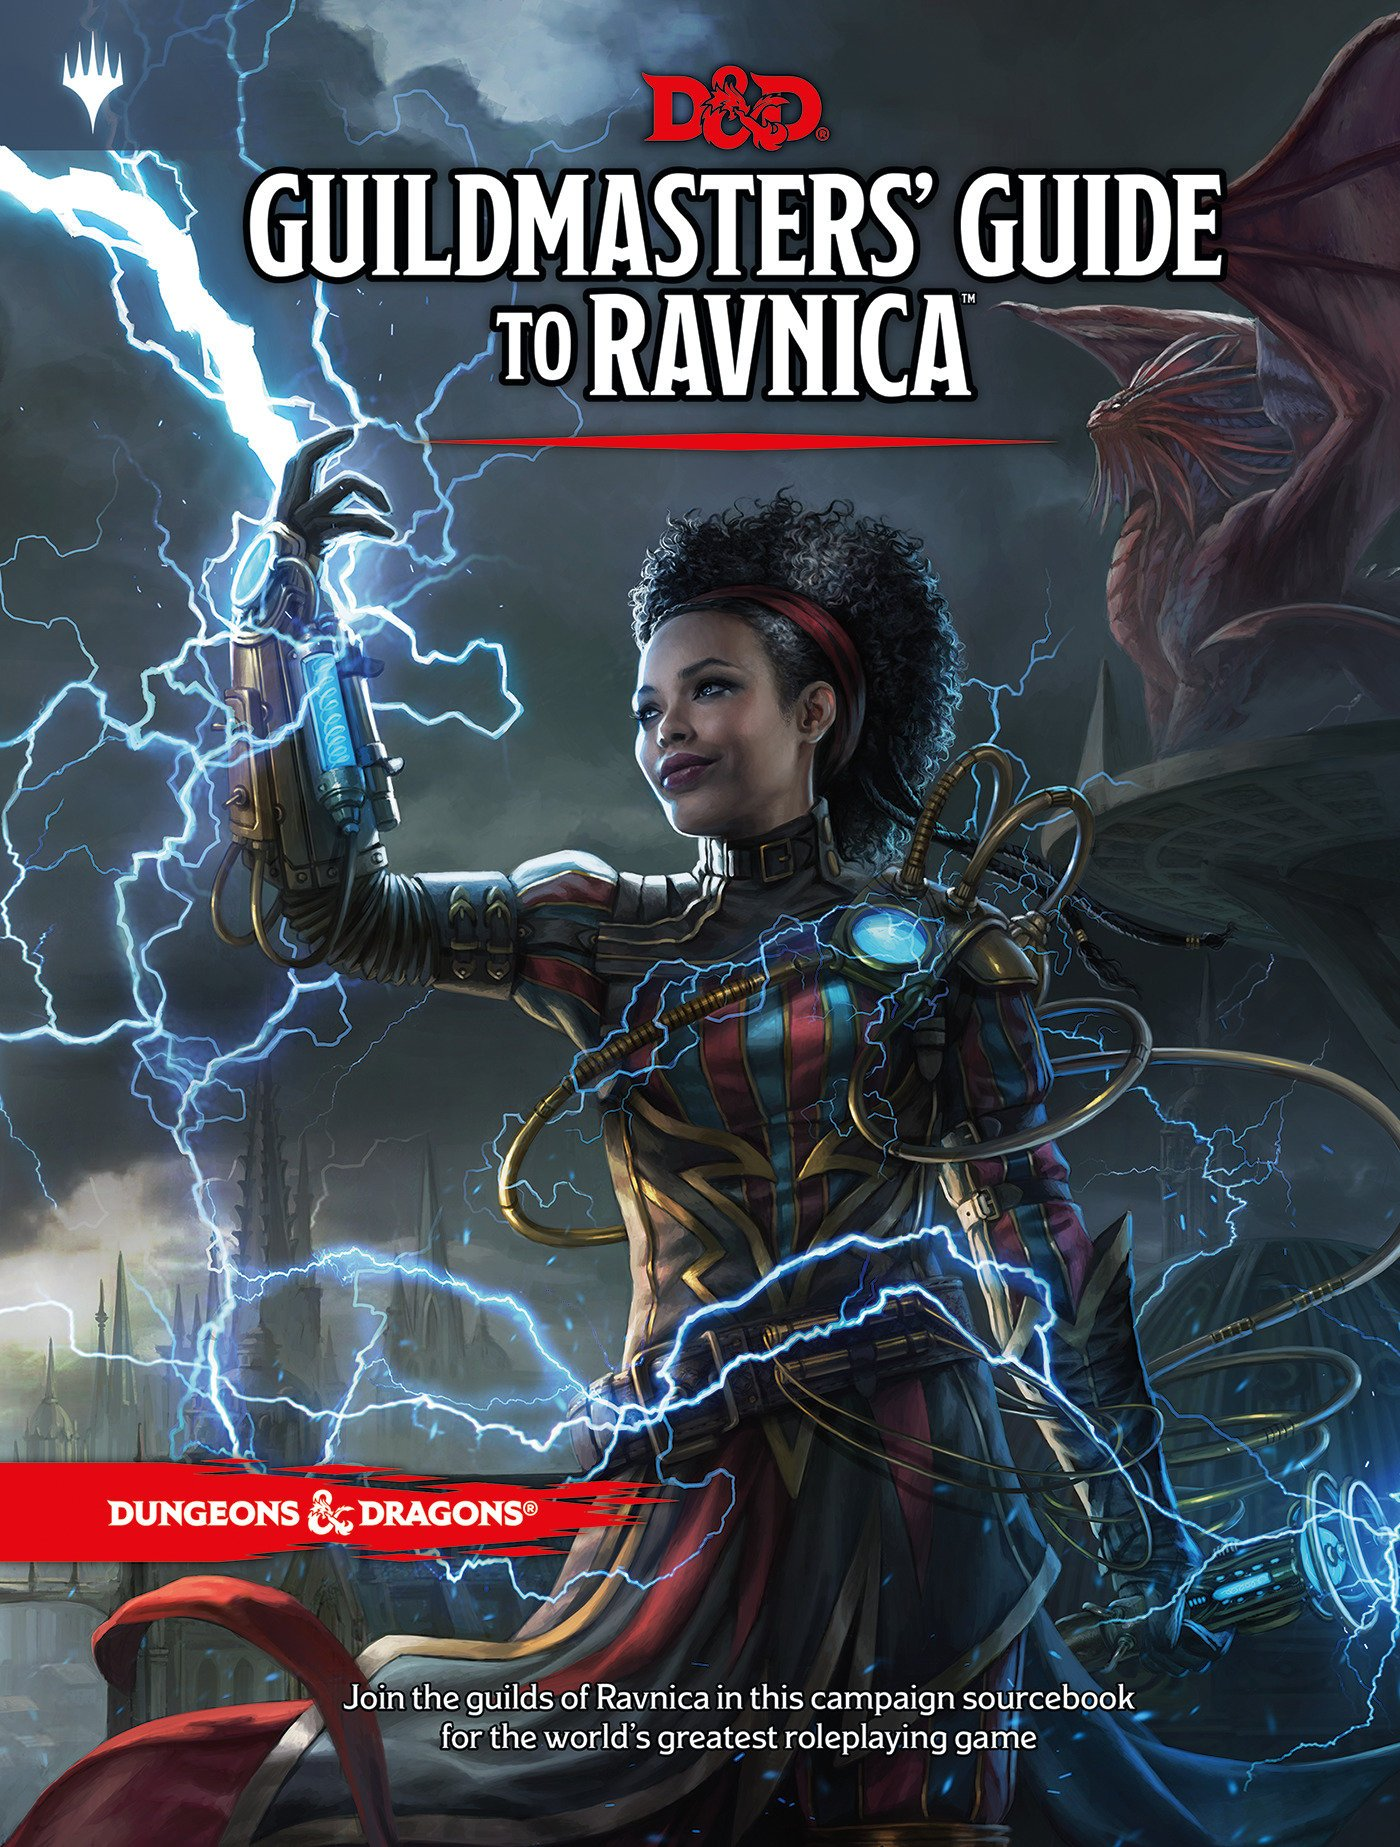 Amazon Leaks Contents to D&D's Guildmasters' Guide to Ravnica